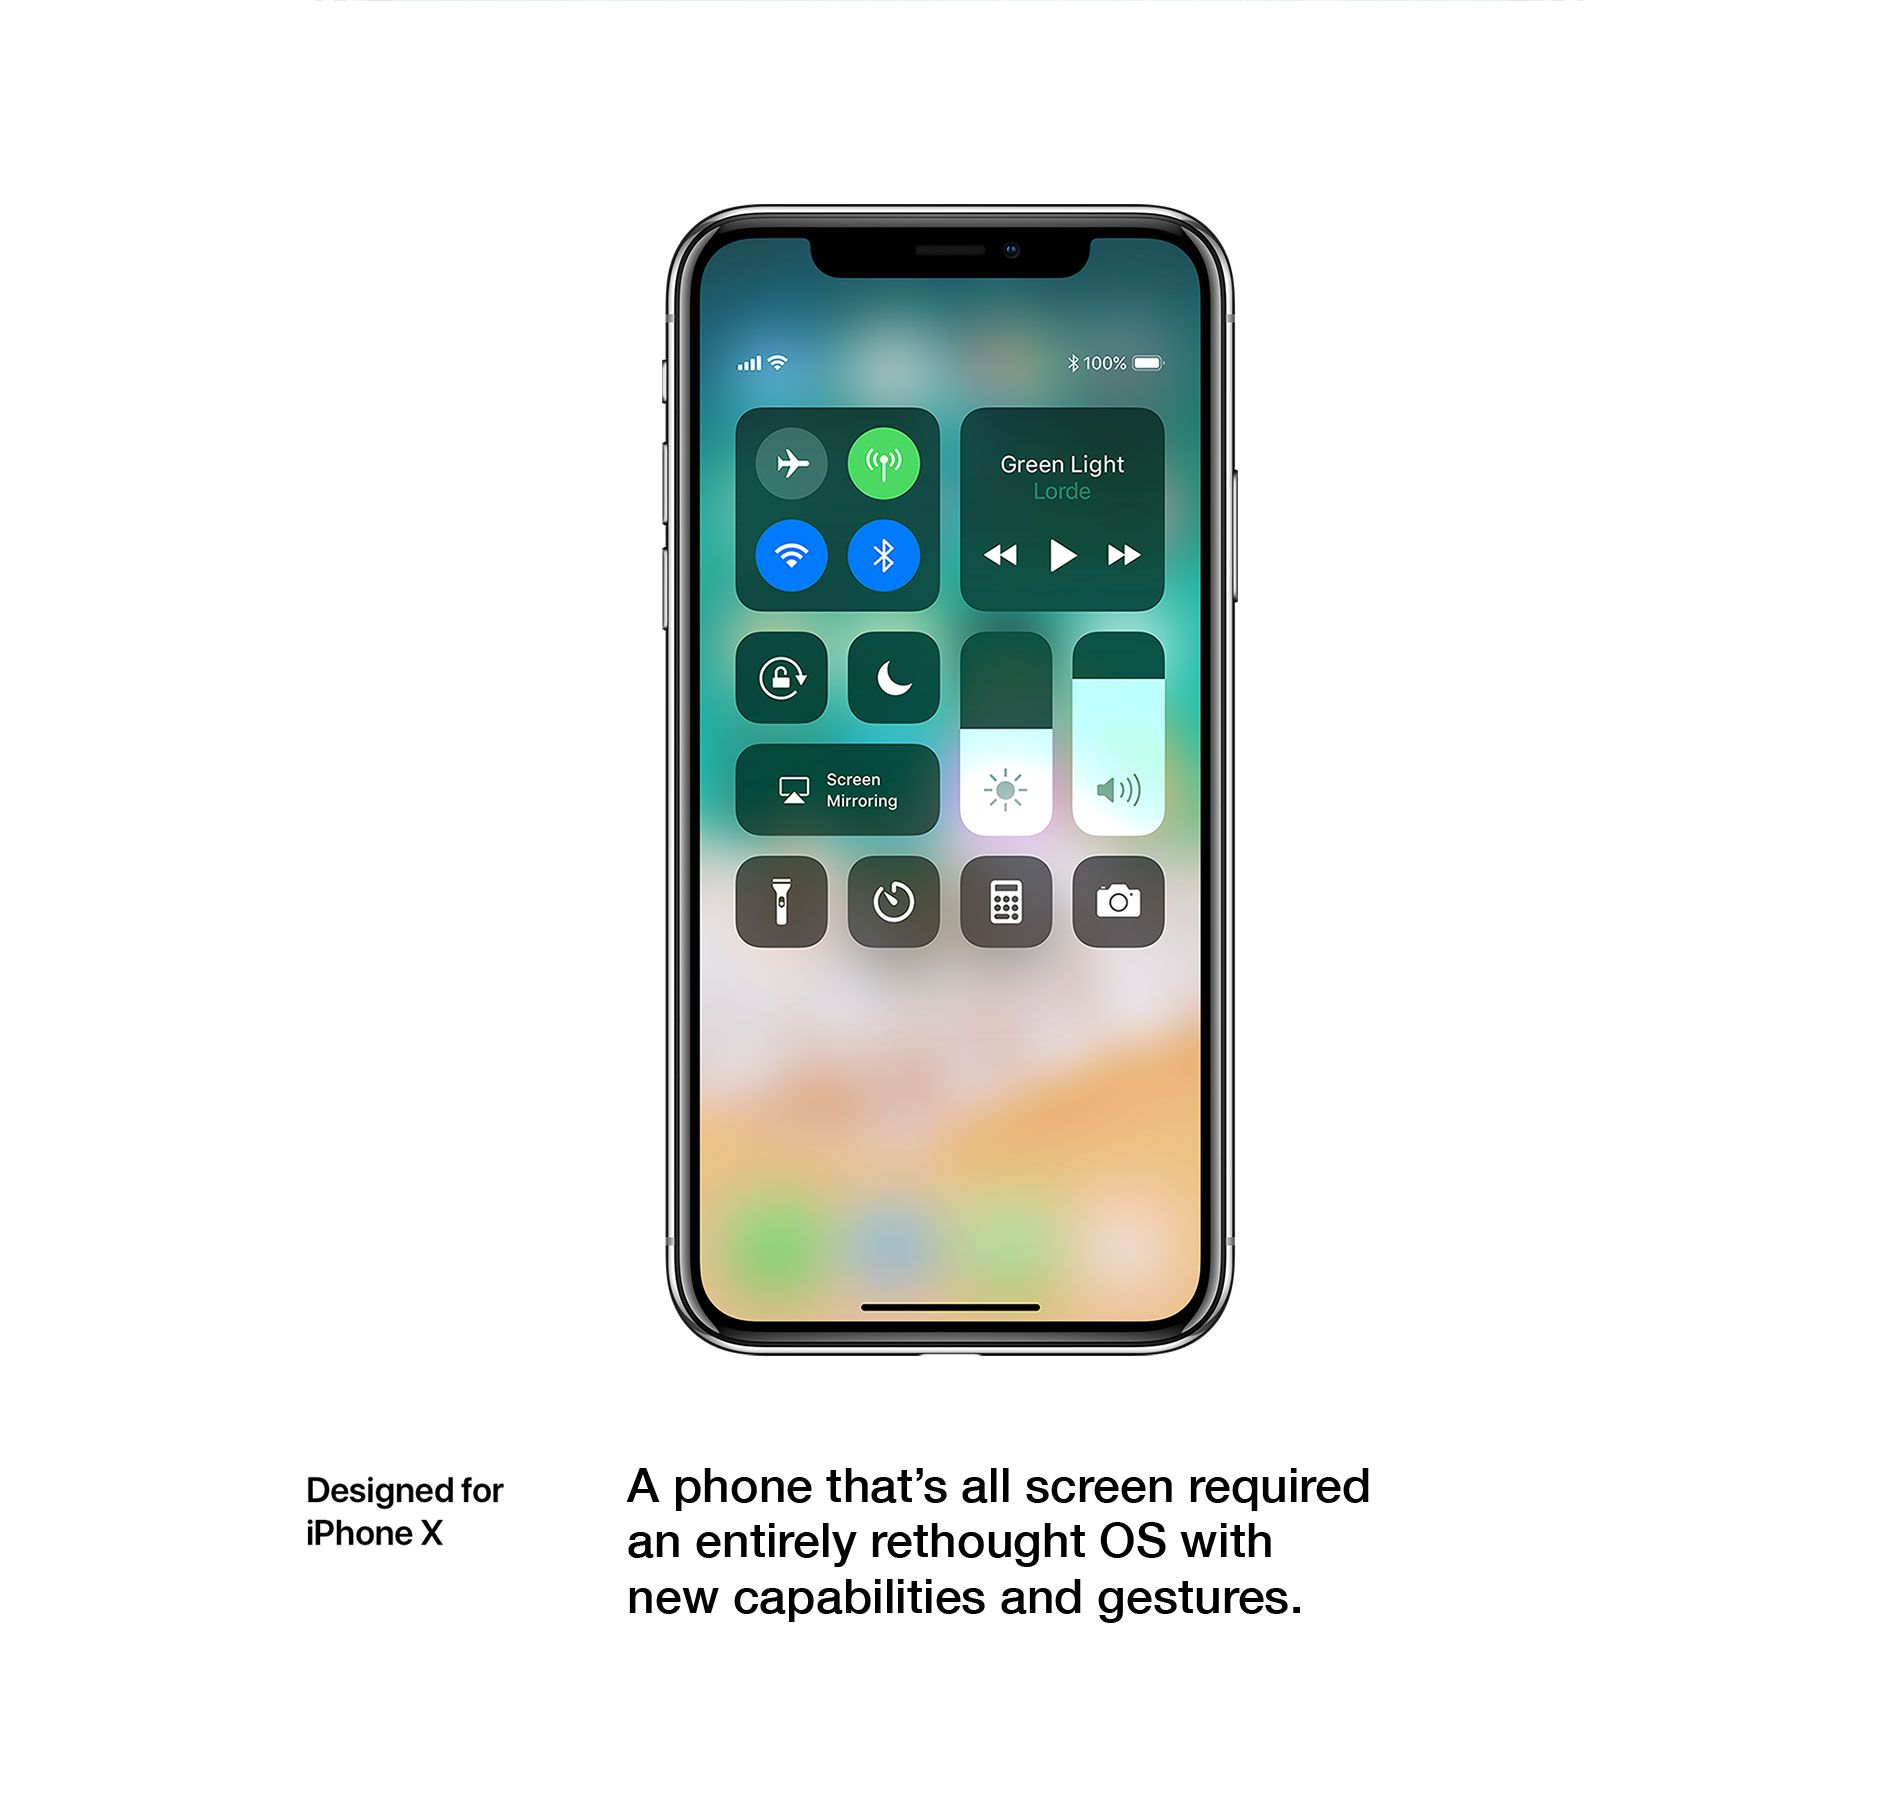 Designed for iPhone X